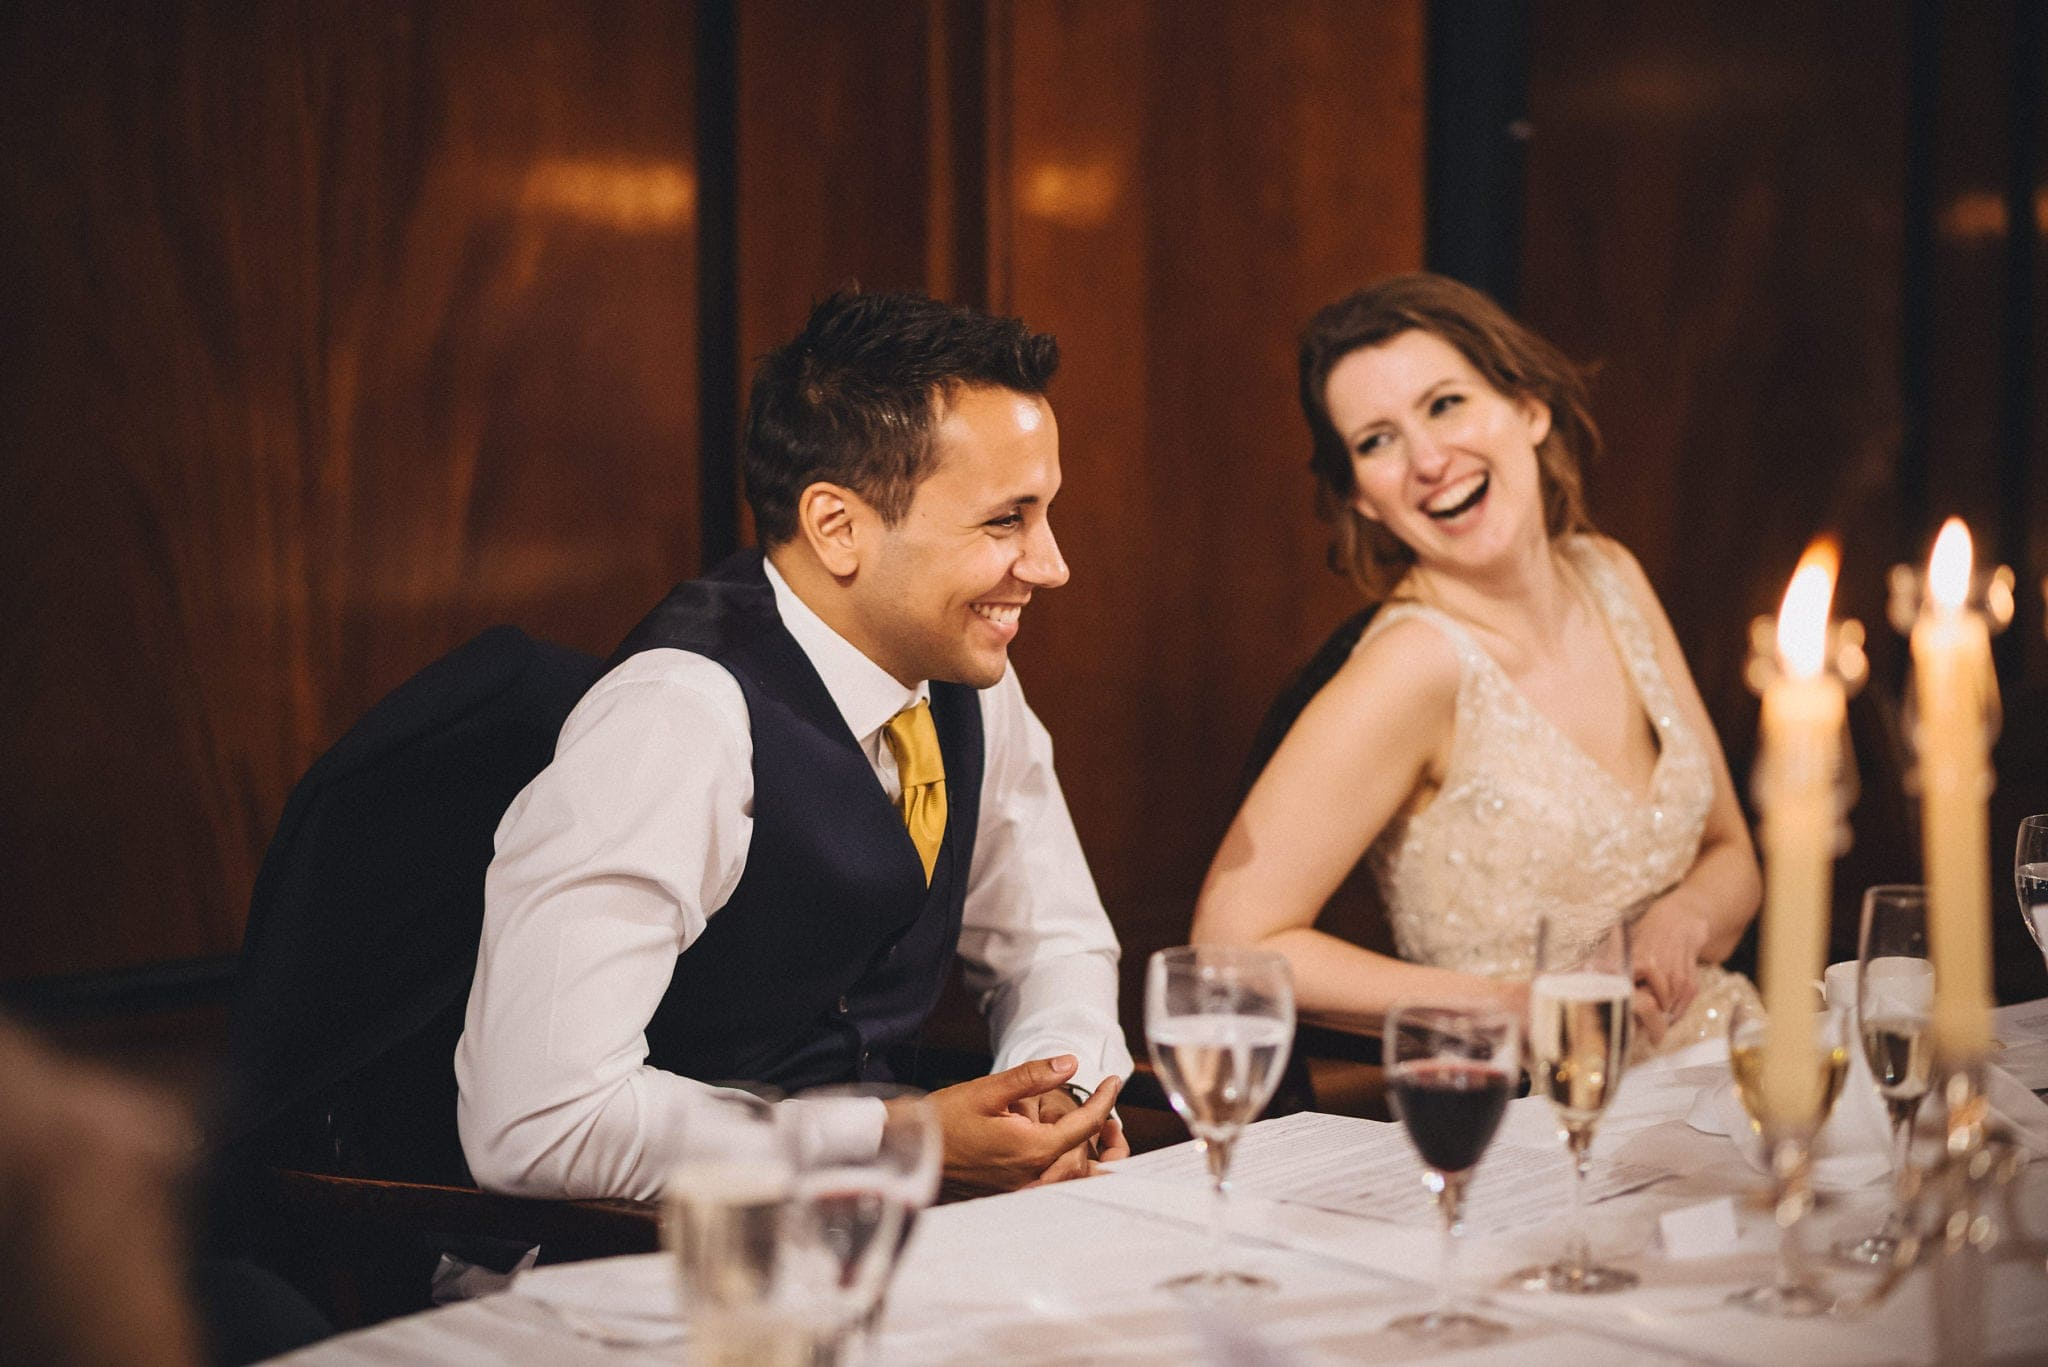 Bride and groom laugh at dinner table